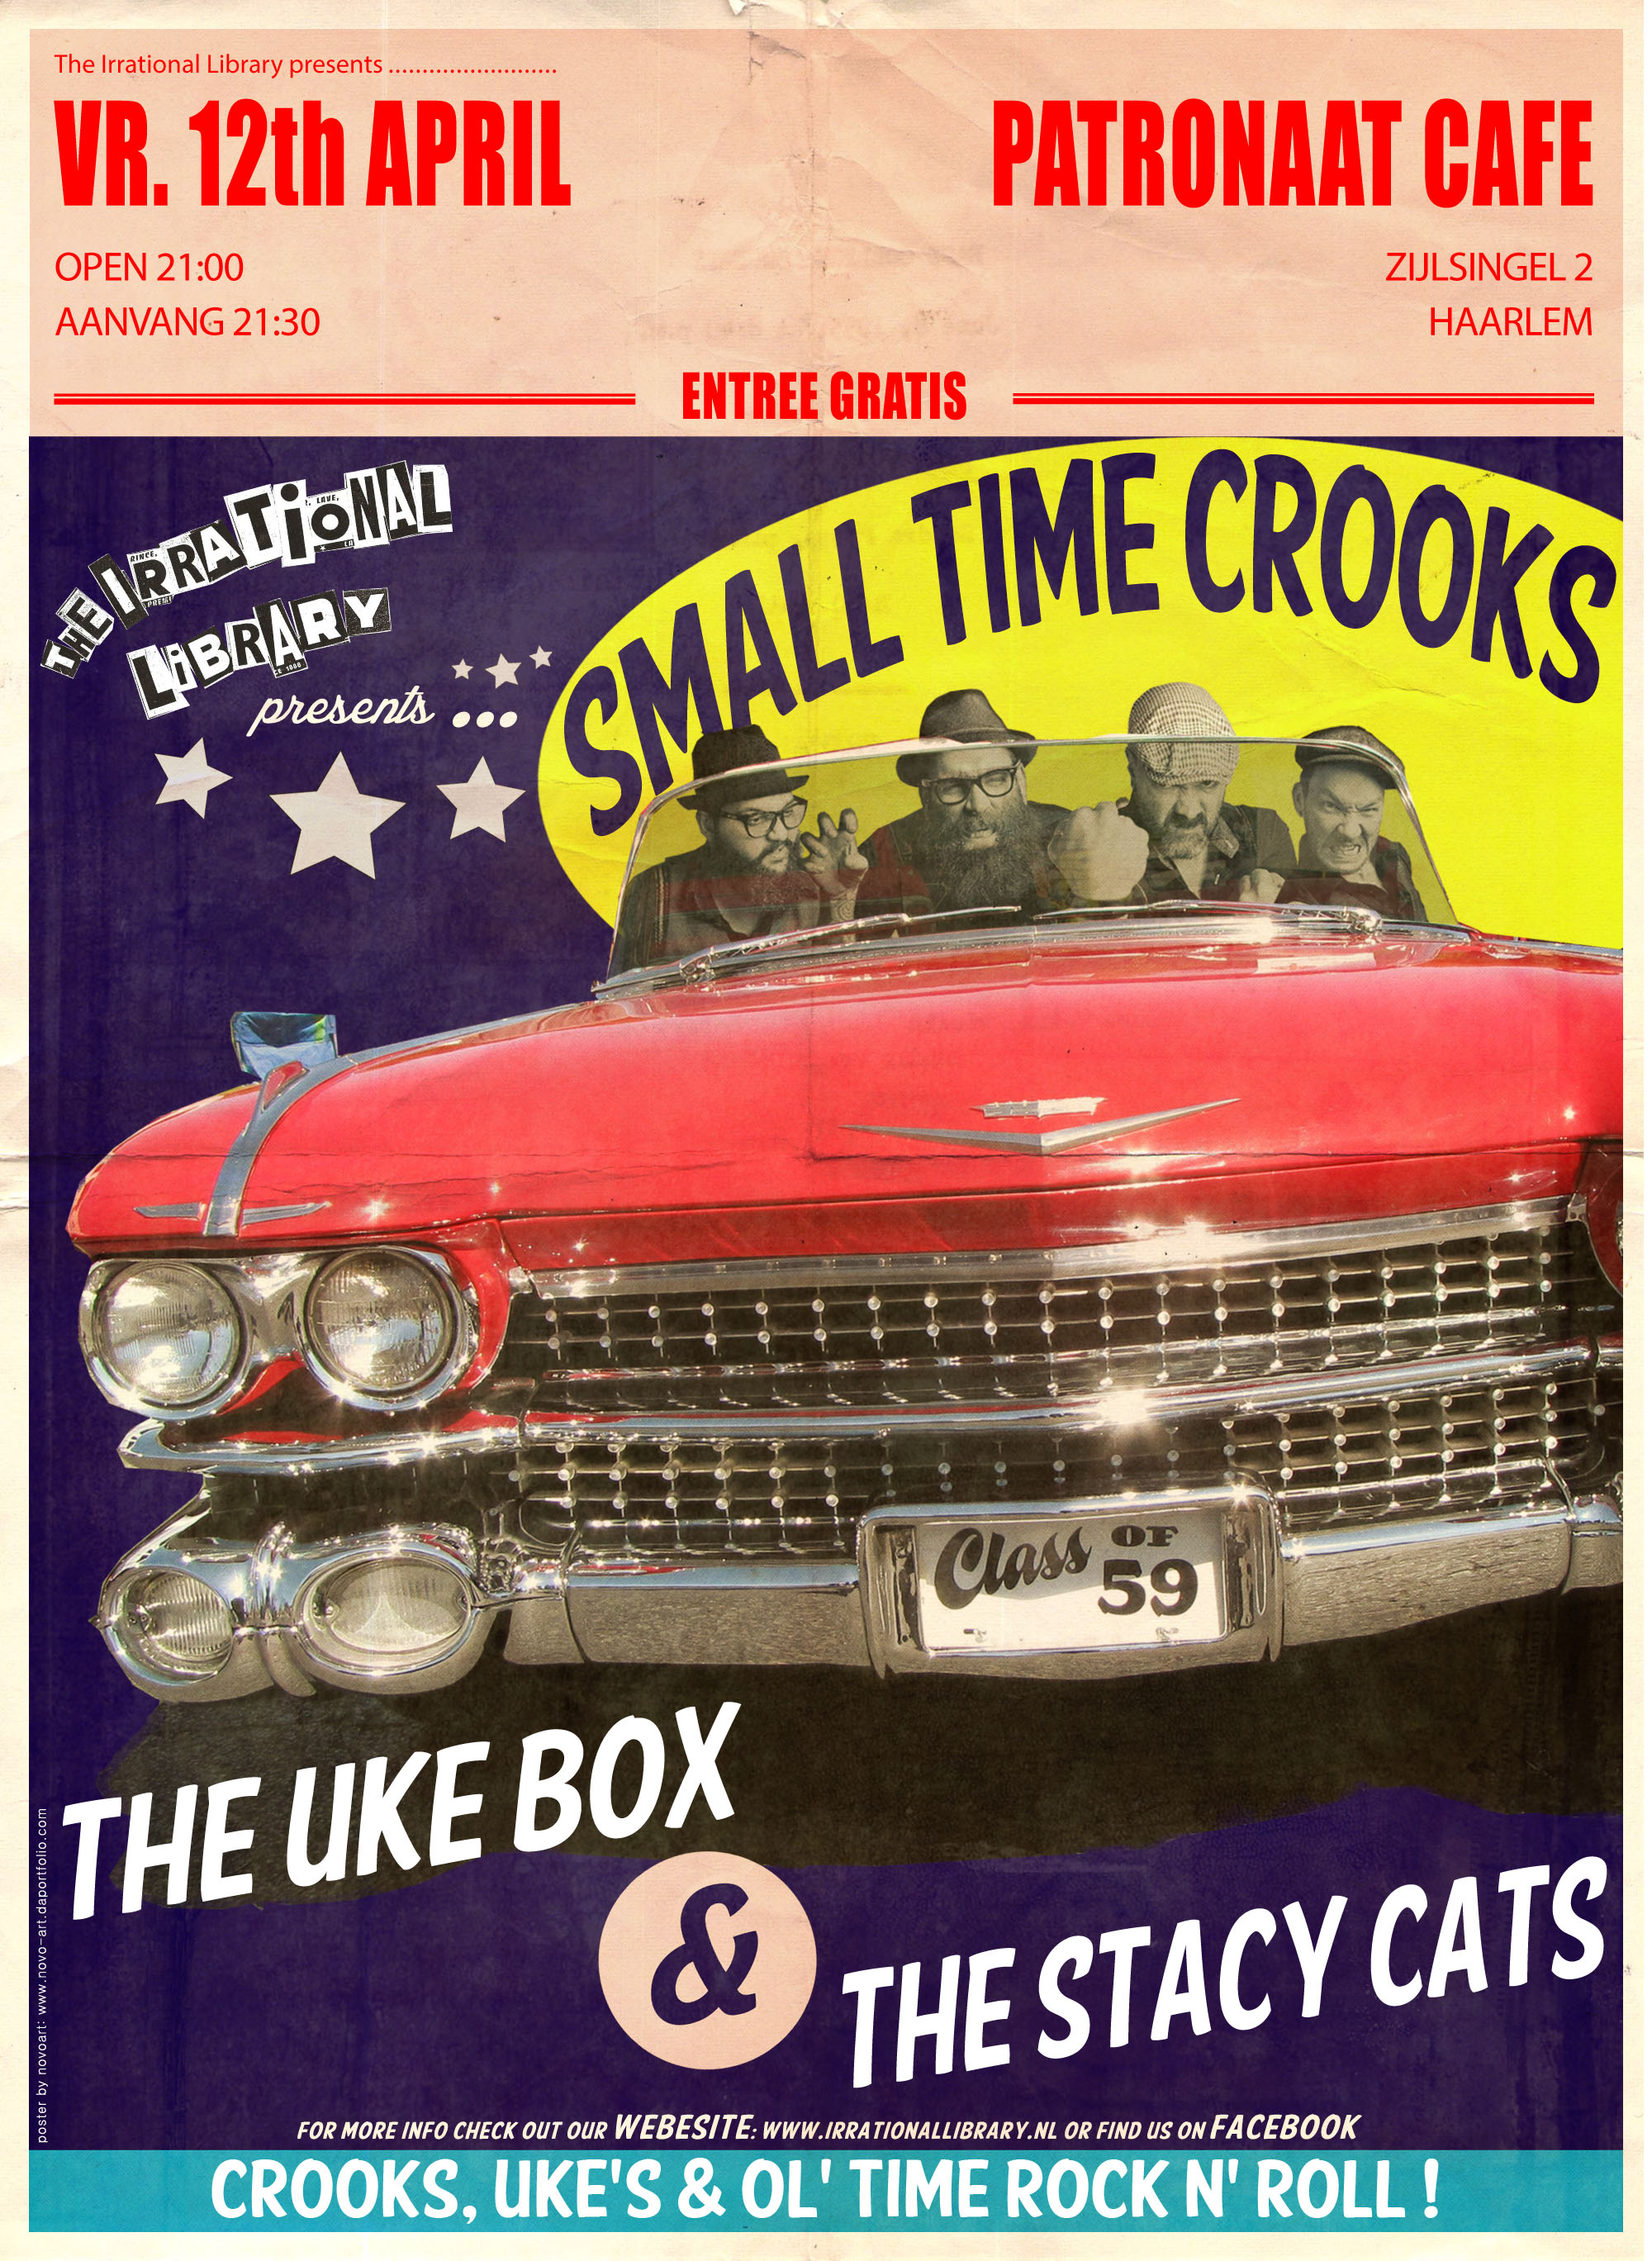 Small Time Crooks 2.jpg